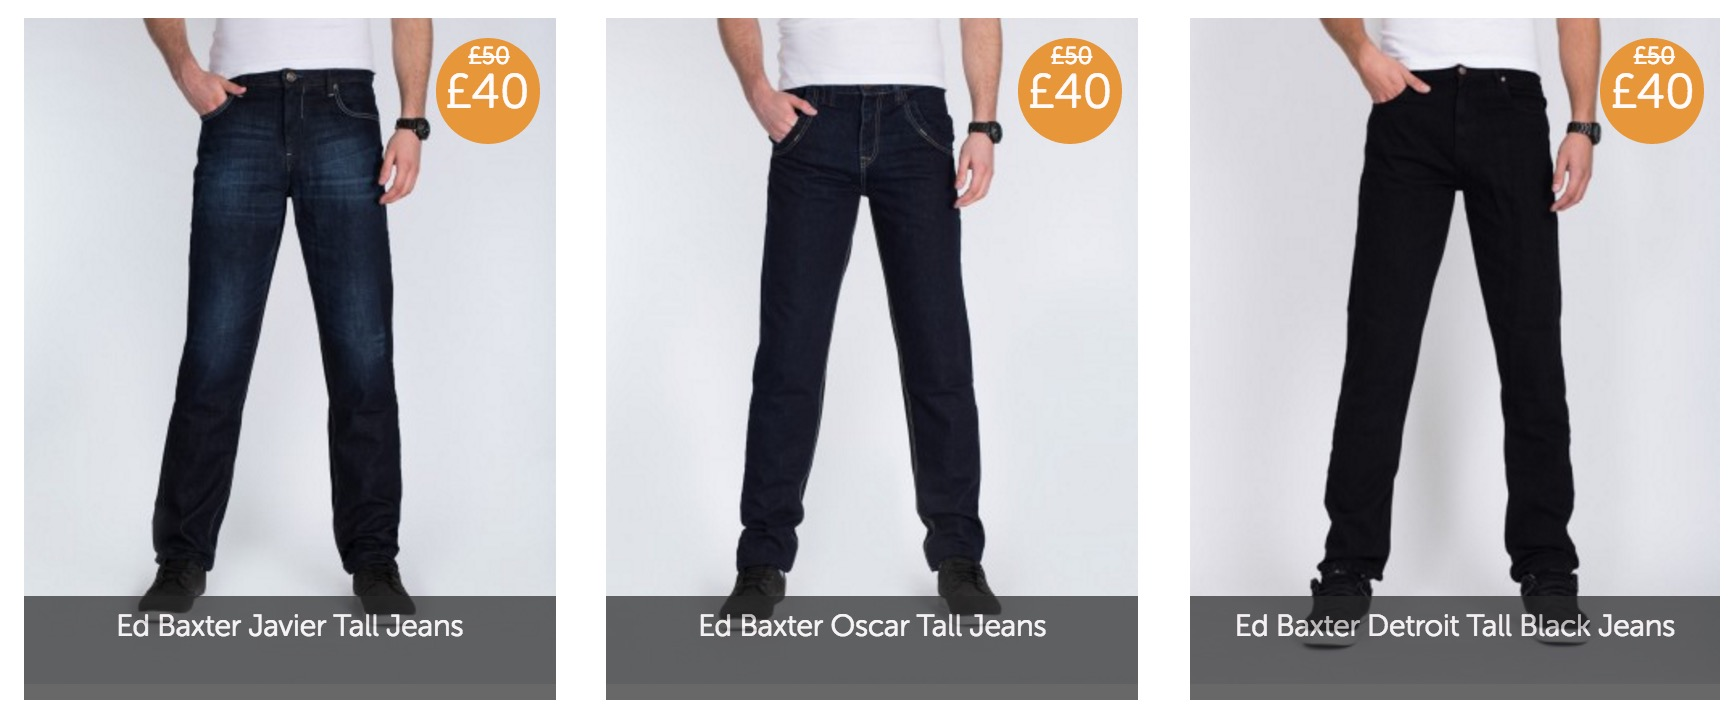 2 tall jeans normal